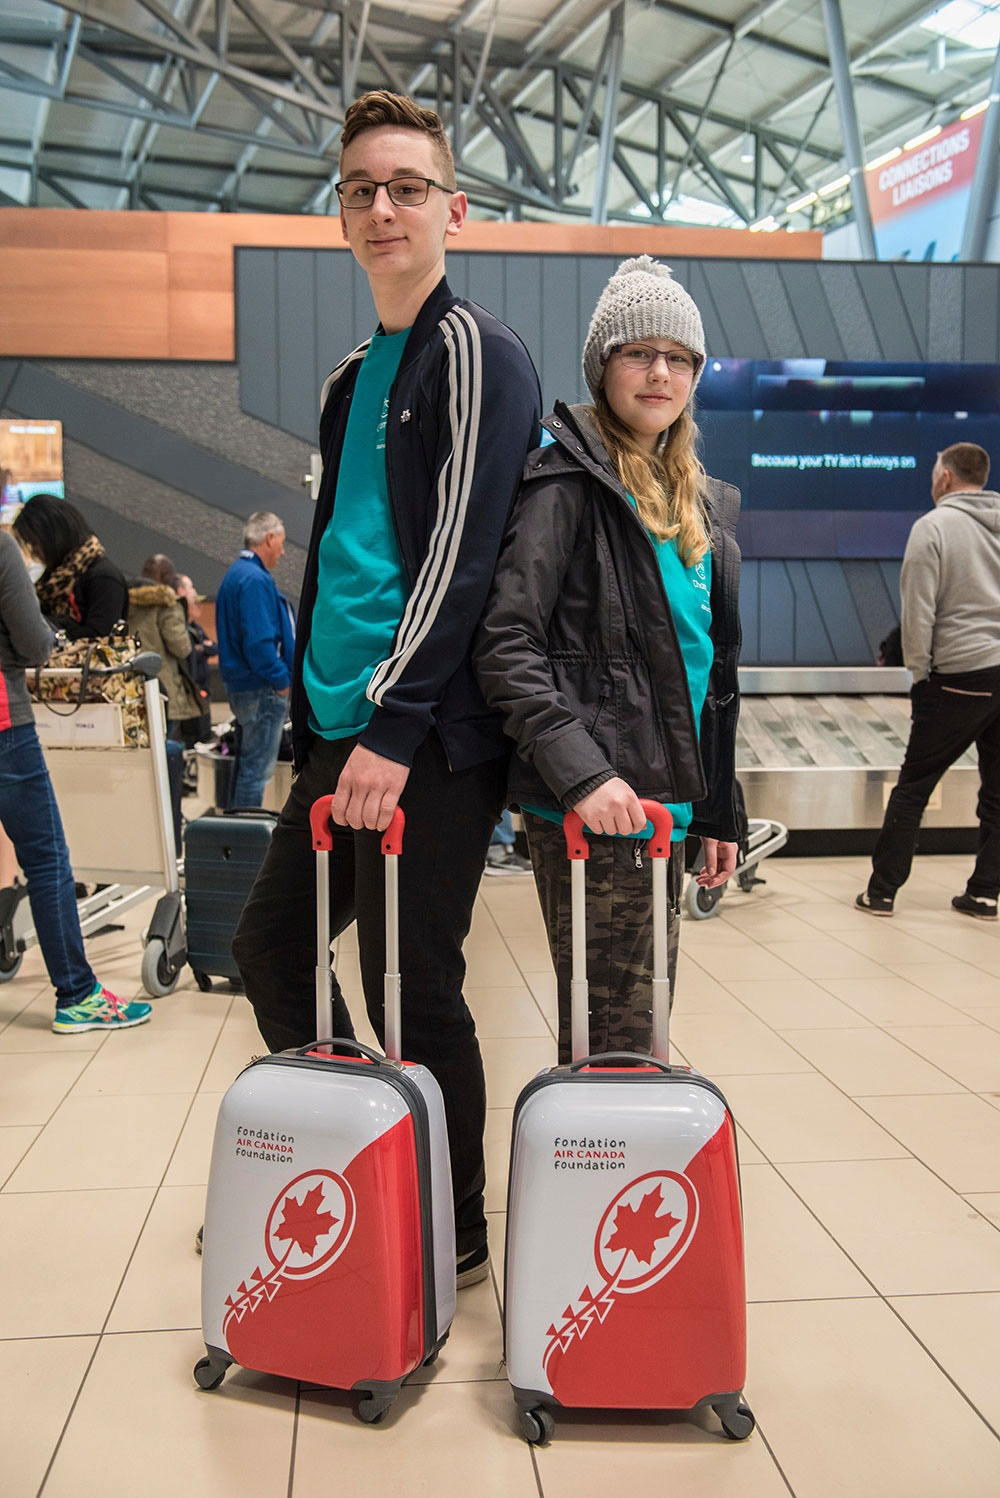 Two teenagers at airport with Air Canada suitcases